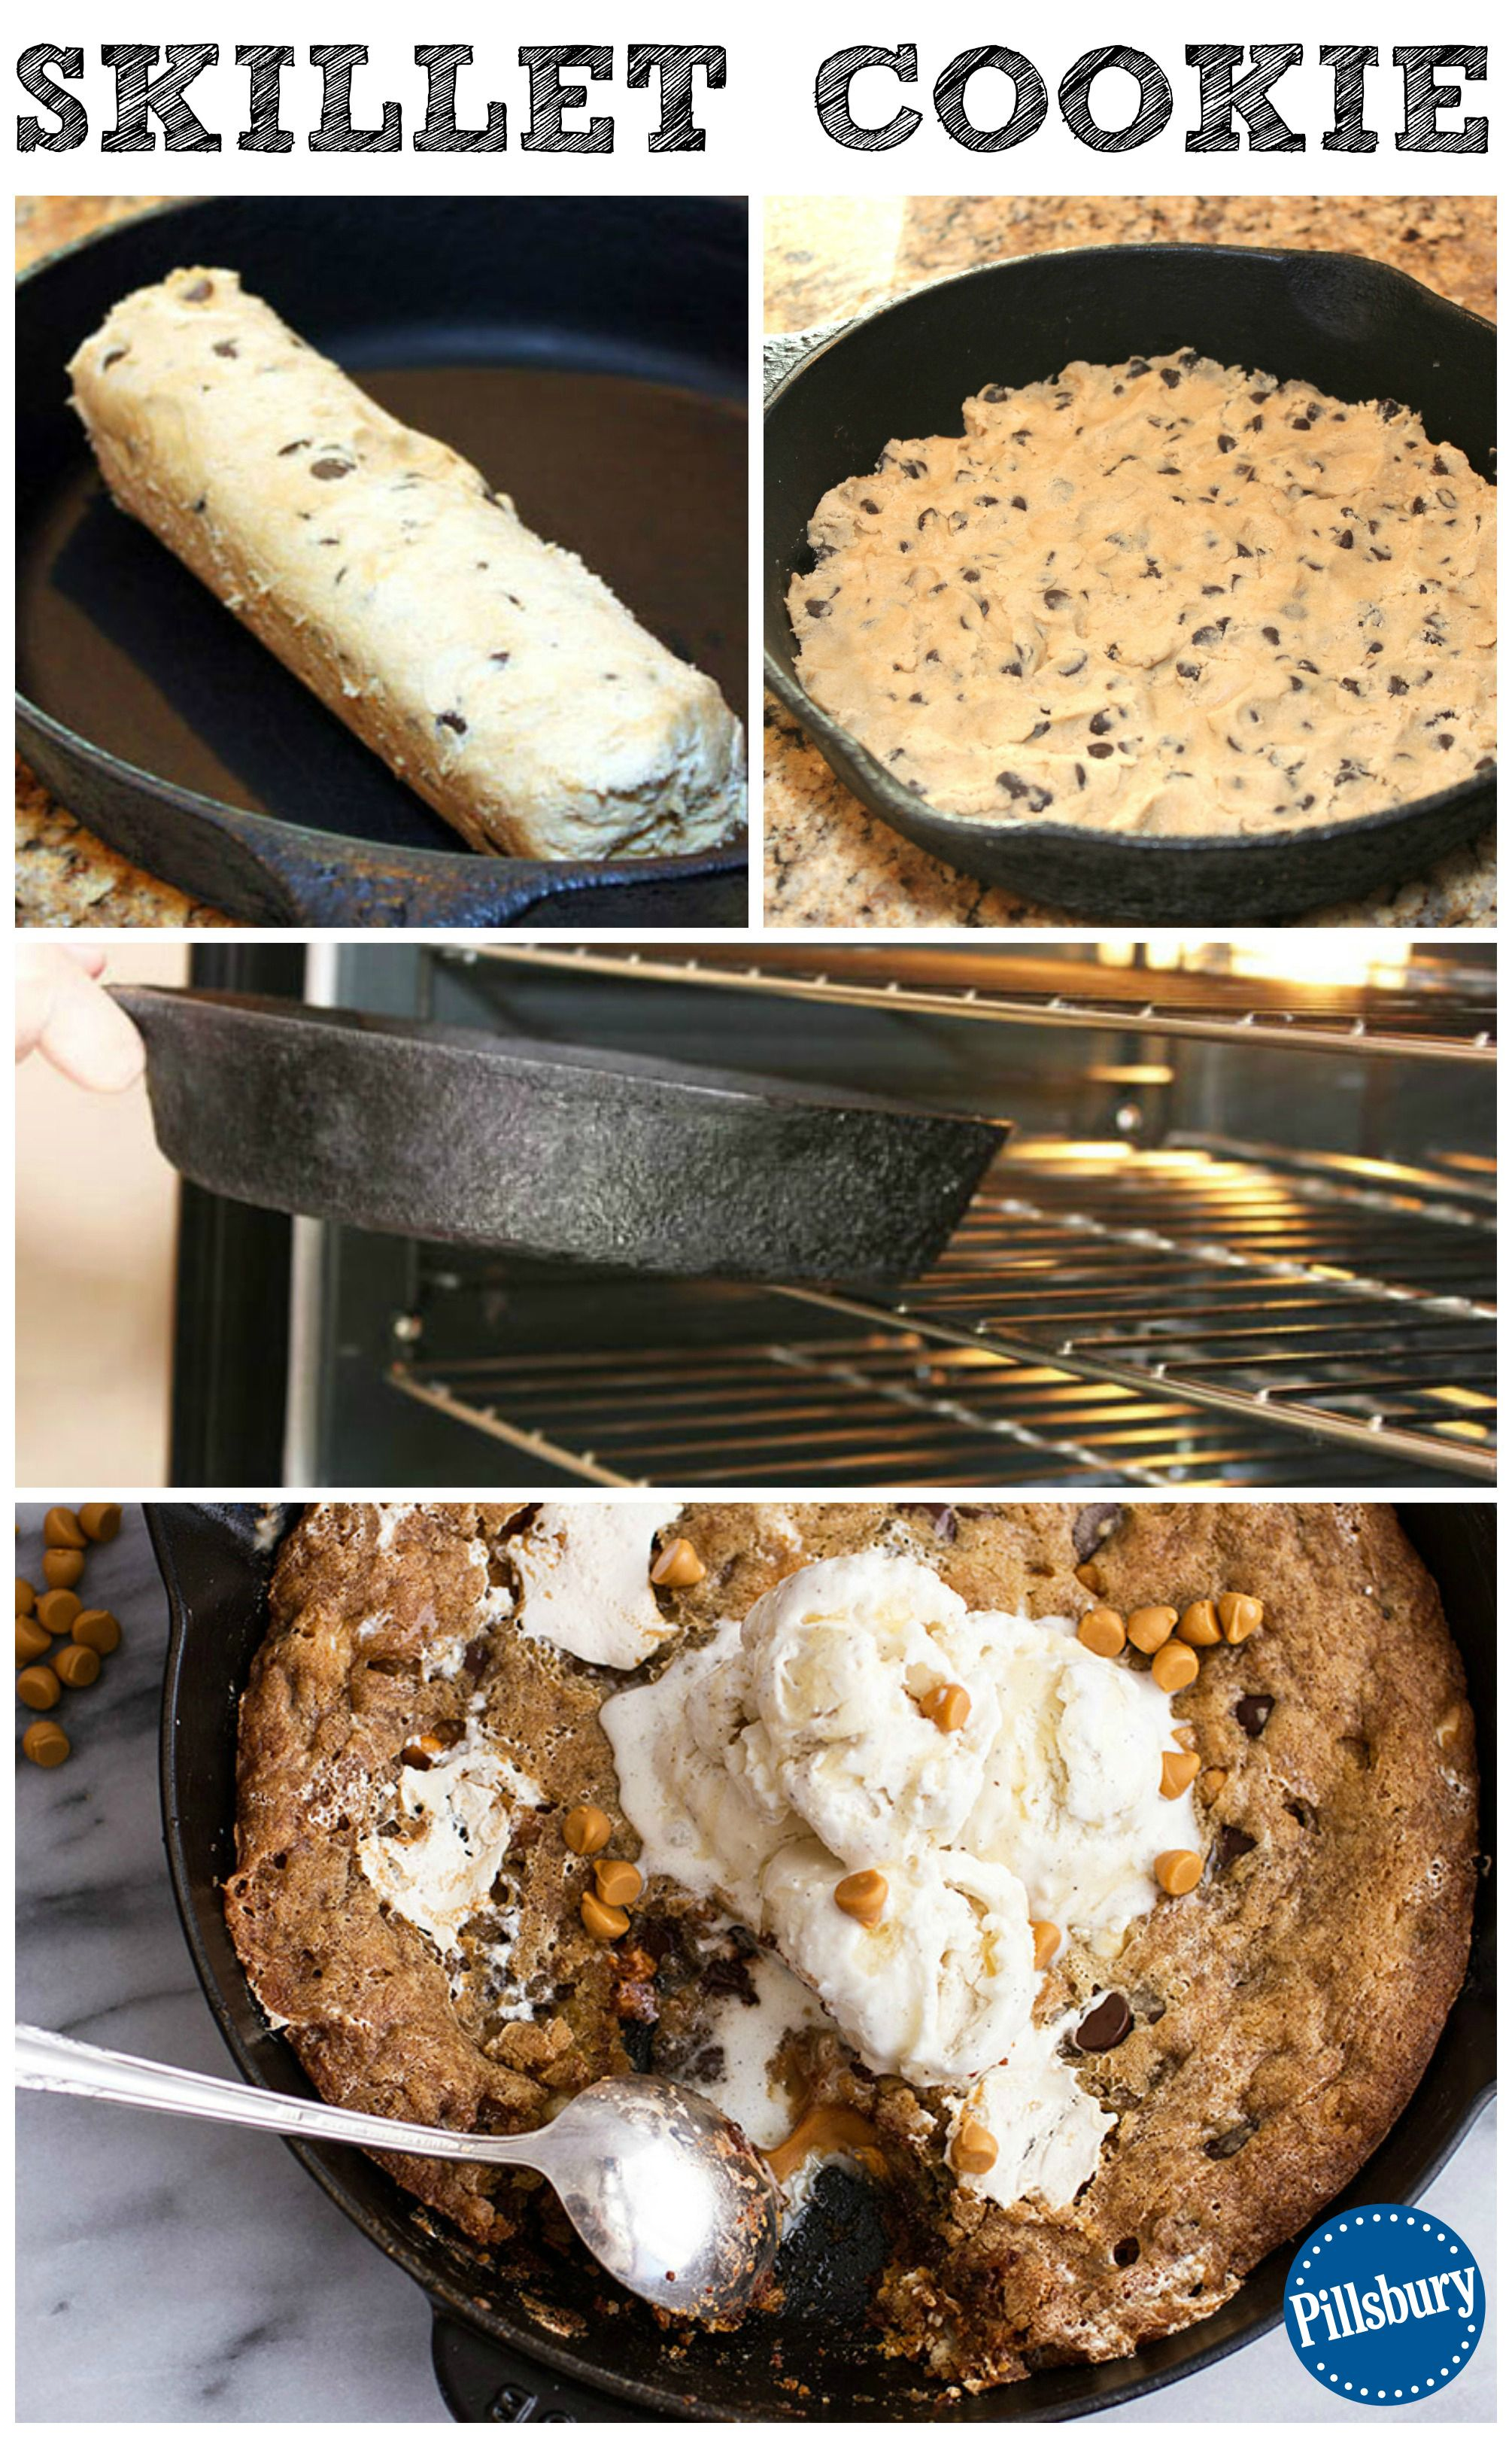 Chocolate Chip Skillet Cookie How-To Learn how to create your own Skillet Cookie! Hot from the oven in just 5 minutes, score a dessert hit with this easy wow.